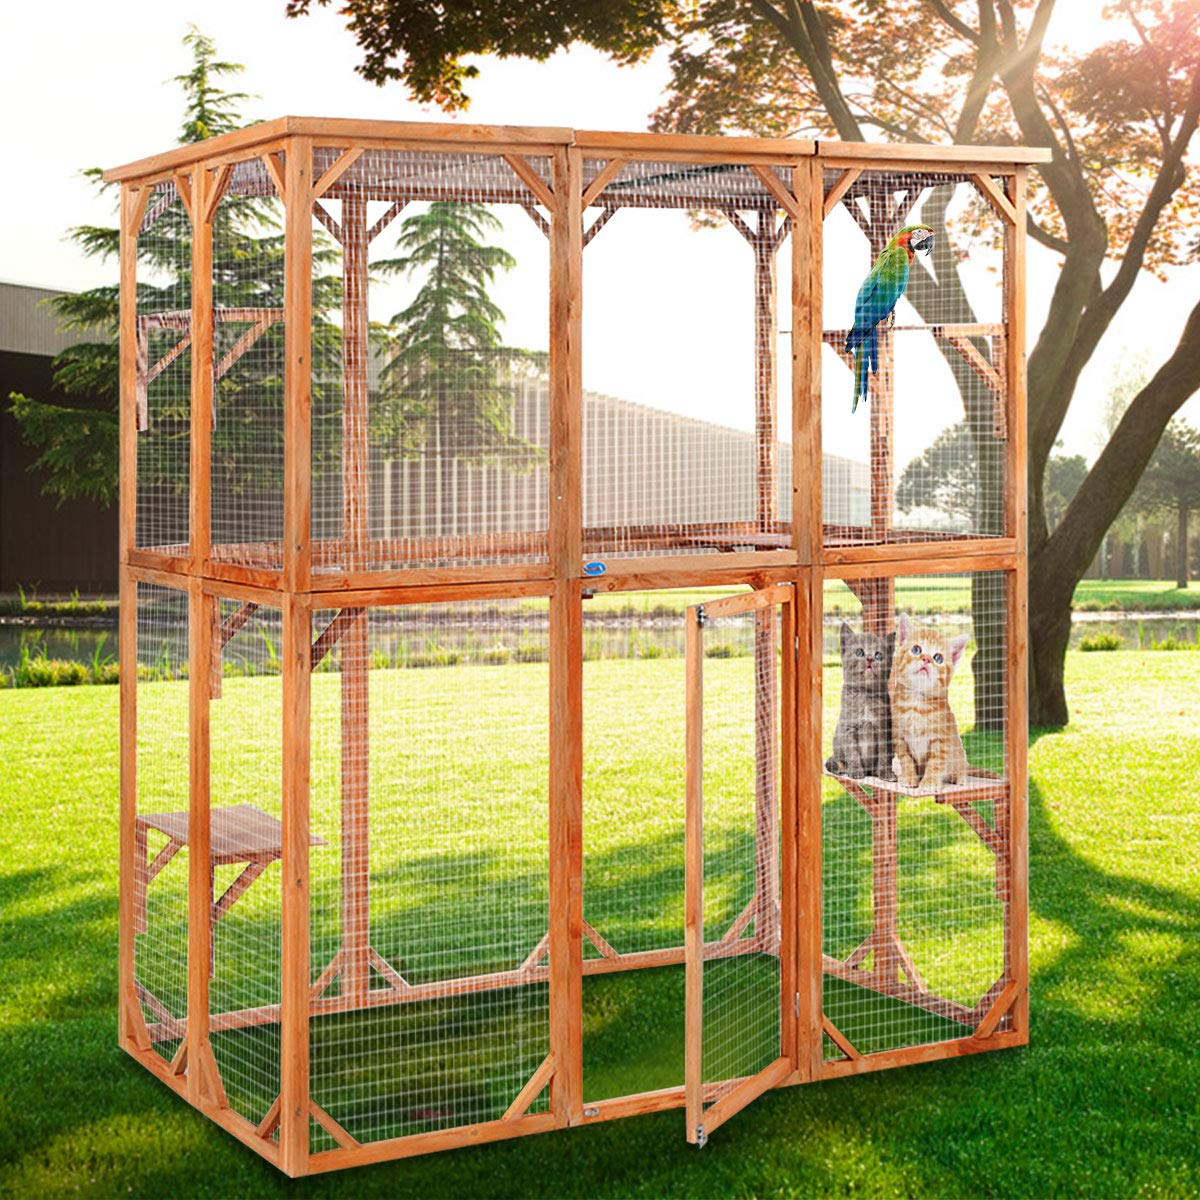 JAXPETY Cat Wooden House Small Animal Outdoor Pen Cage Dog Cat Play Enclosure by JAXPETY